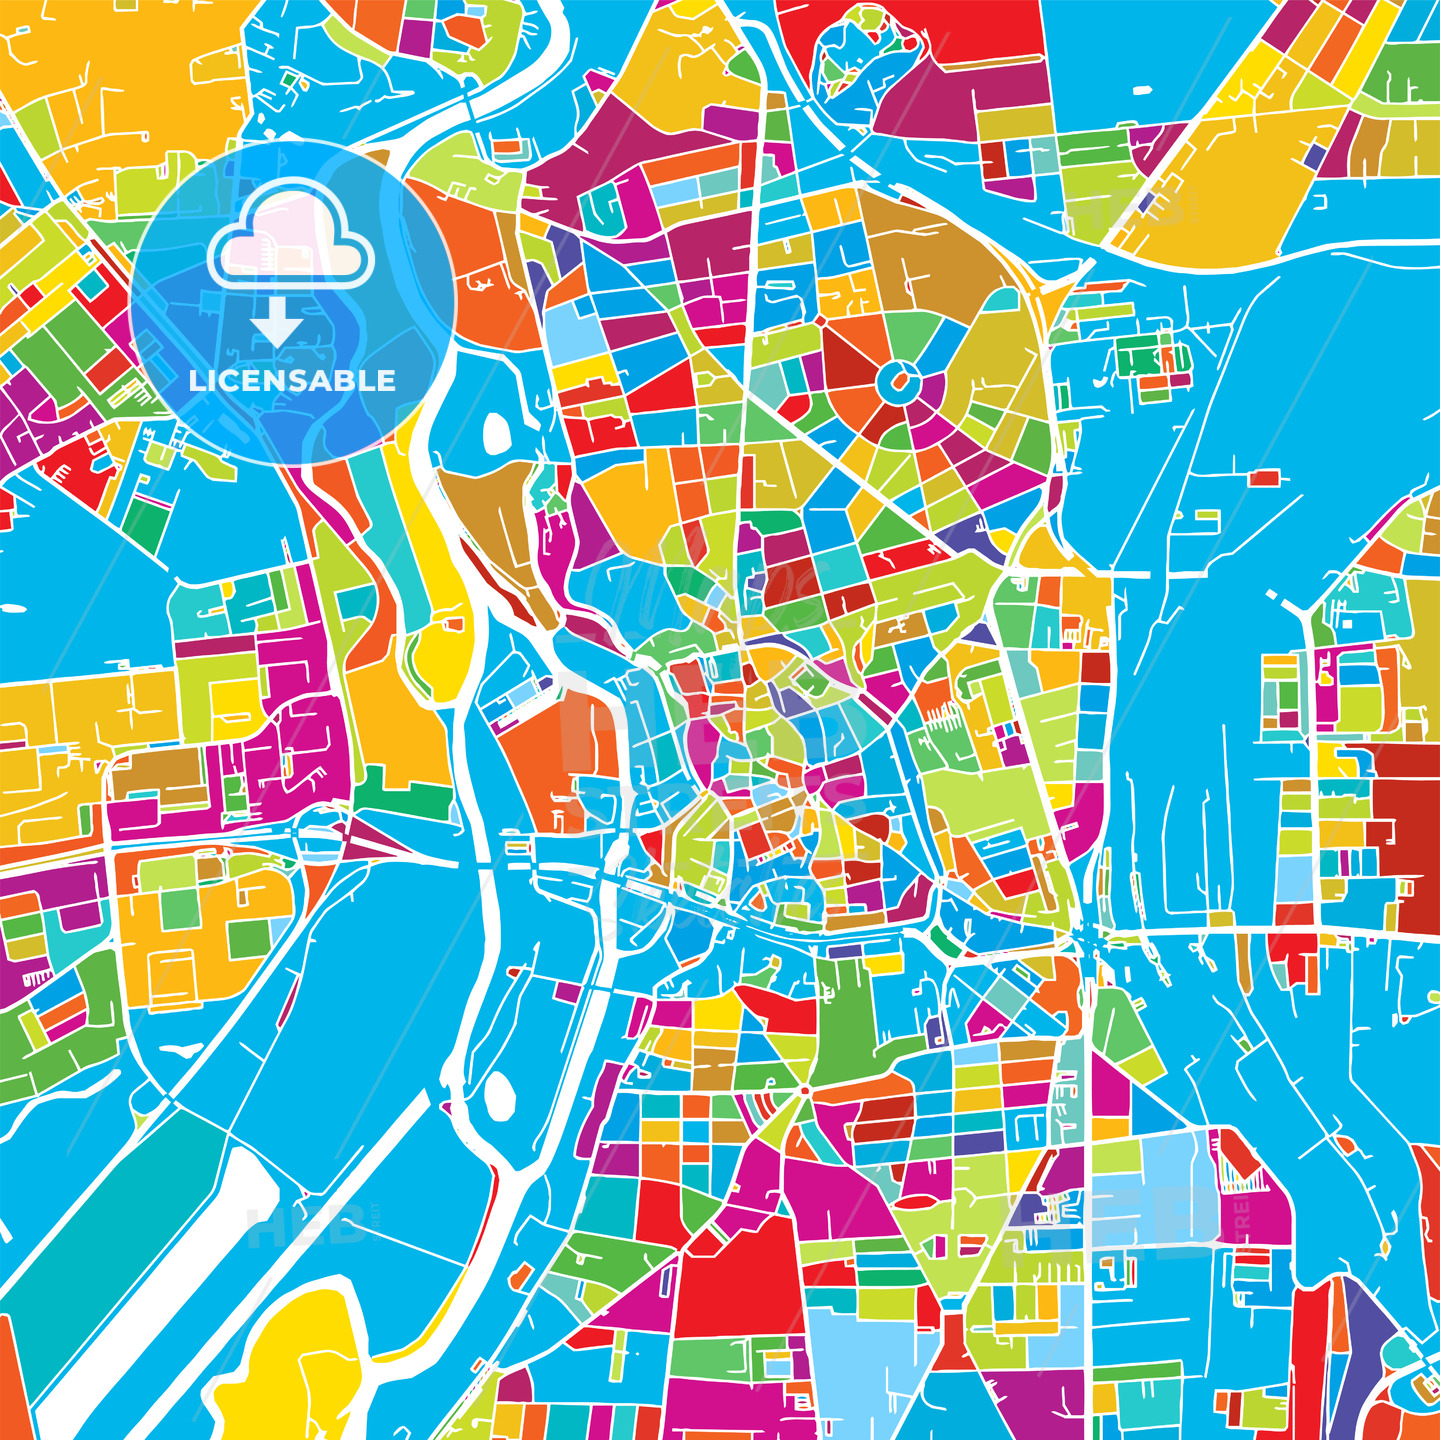 Halle Saale, Germany, Colorful Vector Map - HEBSTREIT's Sketches